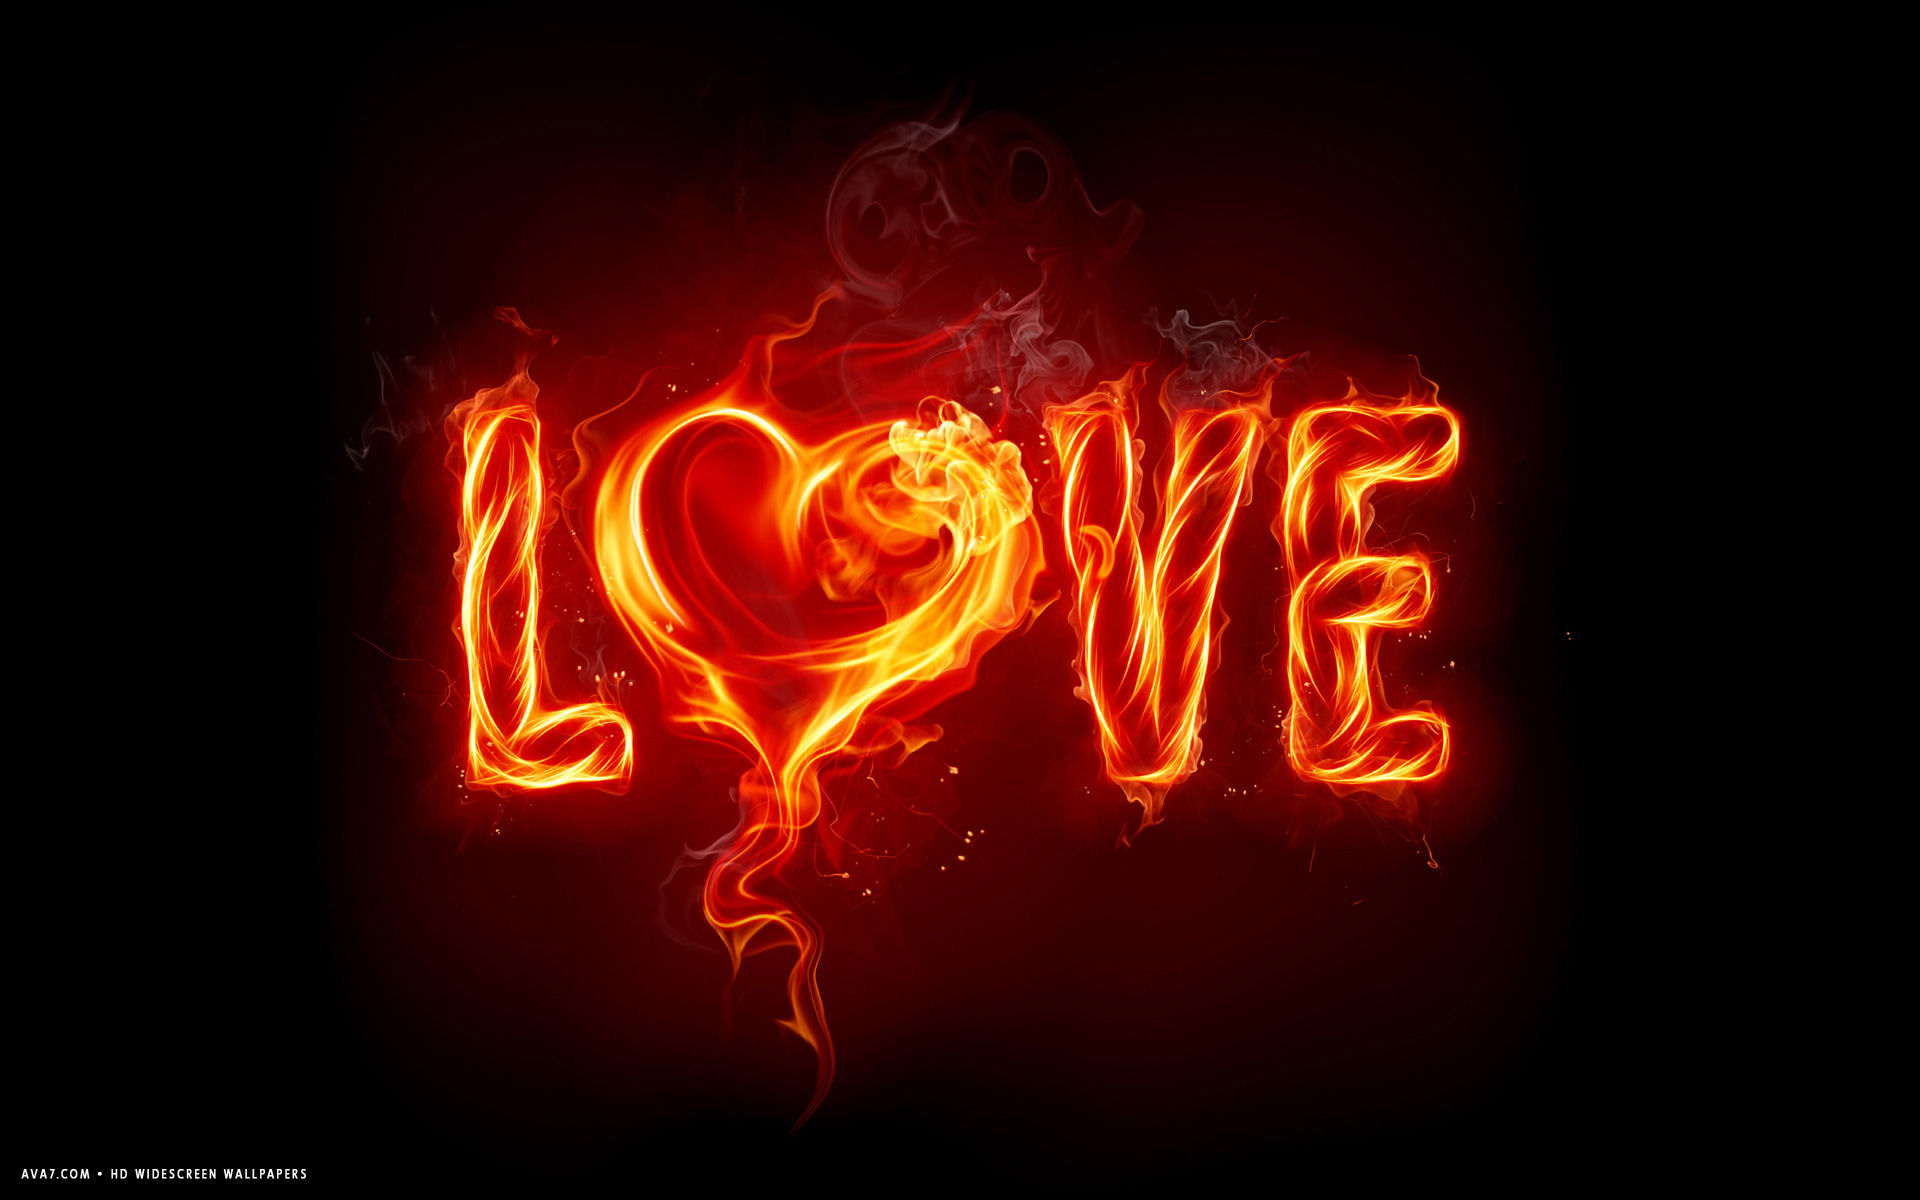 love word burning heart hot hd widescreen wallpaper / romantic backgrounds